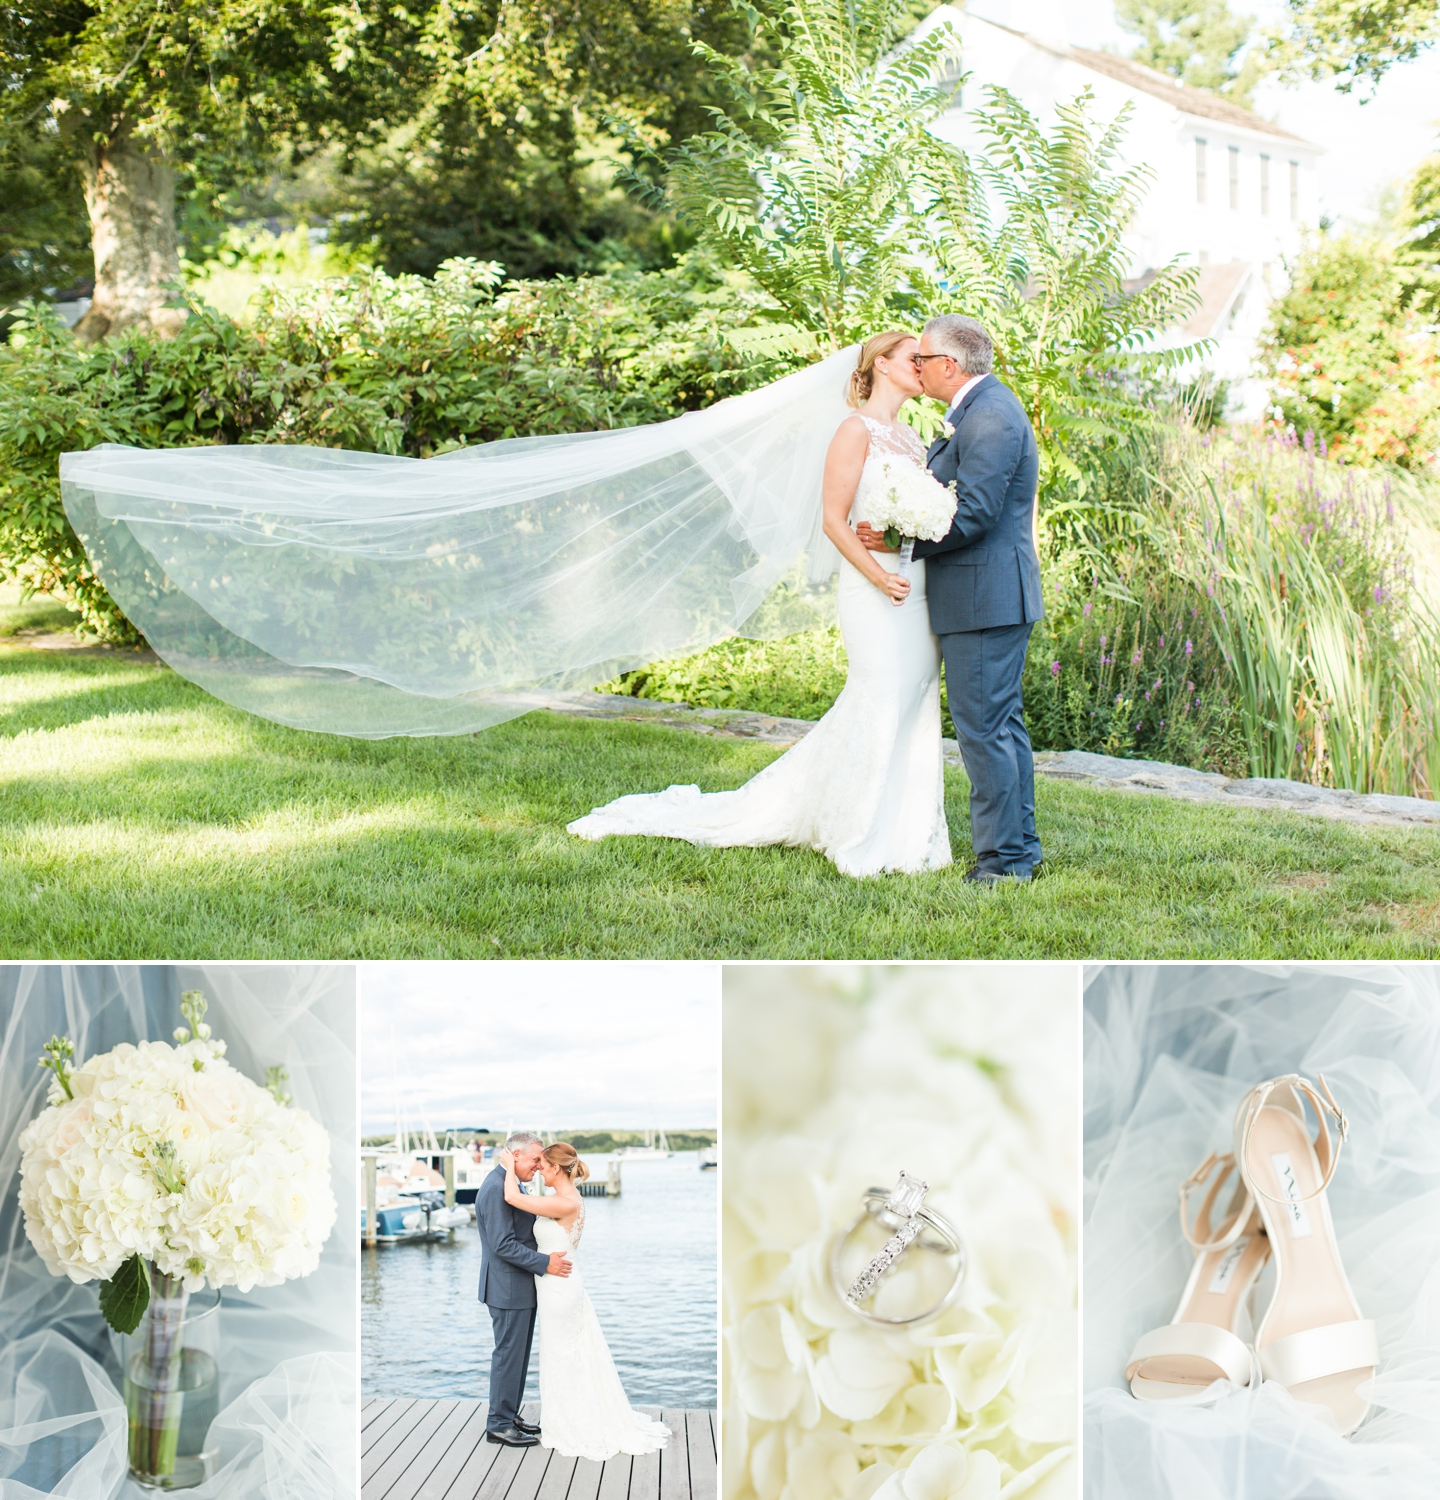 essex-yacht-club-wedding-coastal-connecticut-river-valley-photographer-shaina-lee-photography-cover-photo.jpg